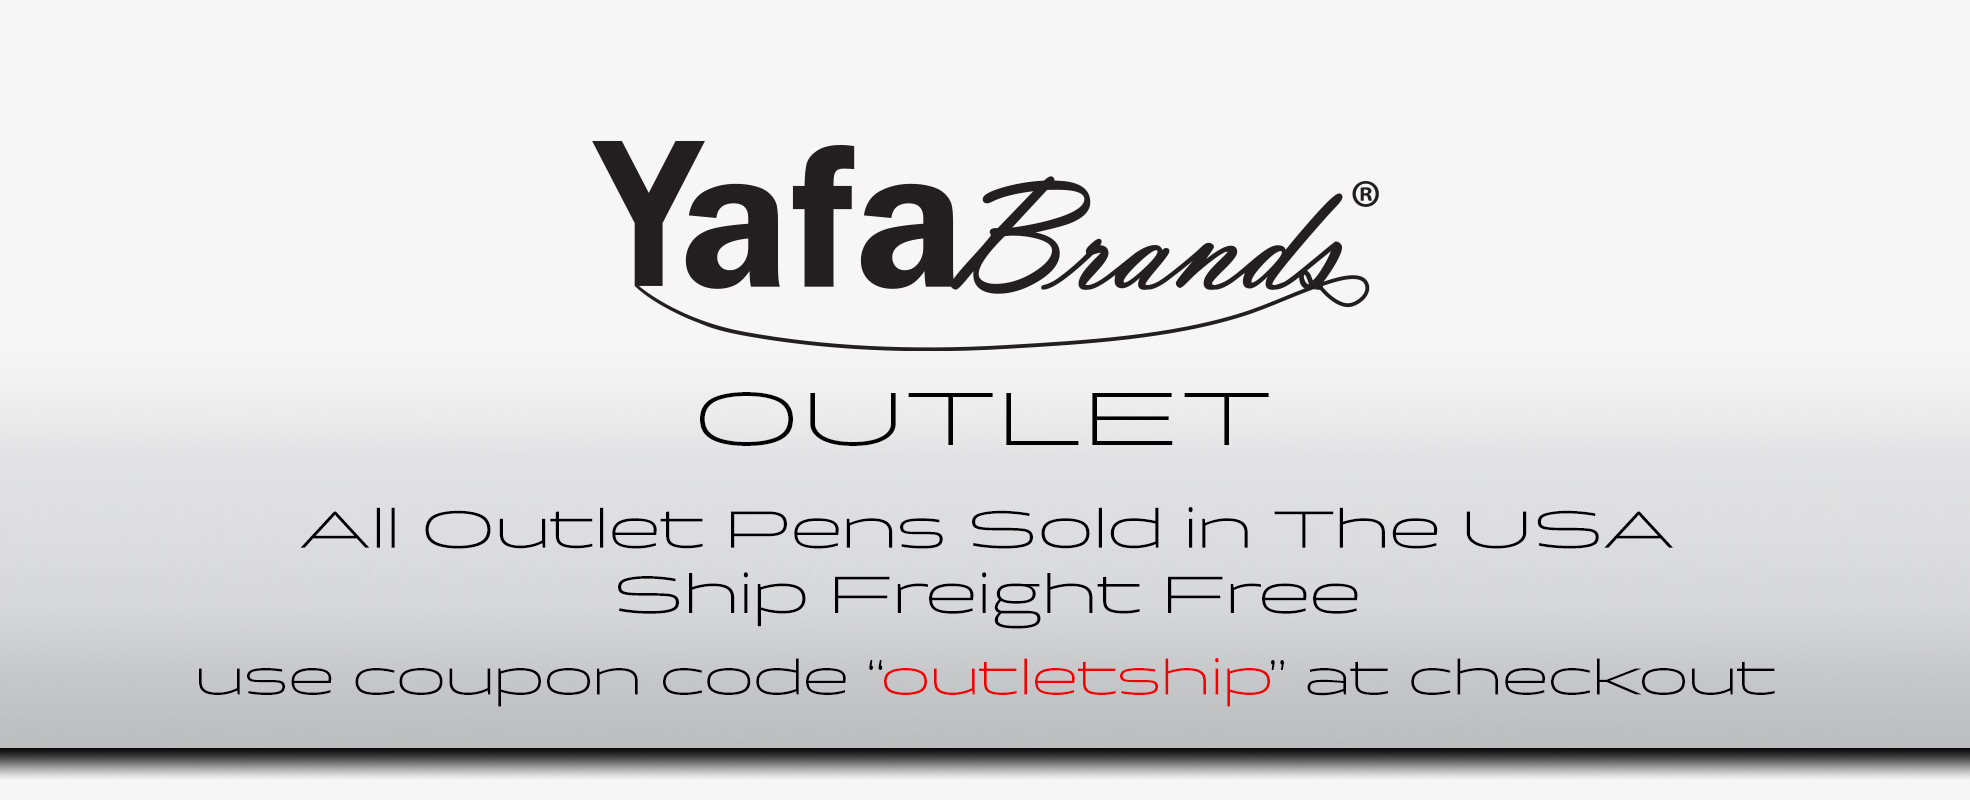 yafa-banner-outlet-free-ship-2.jpg